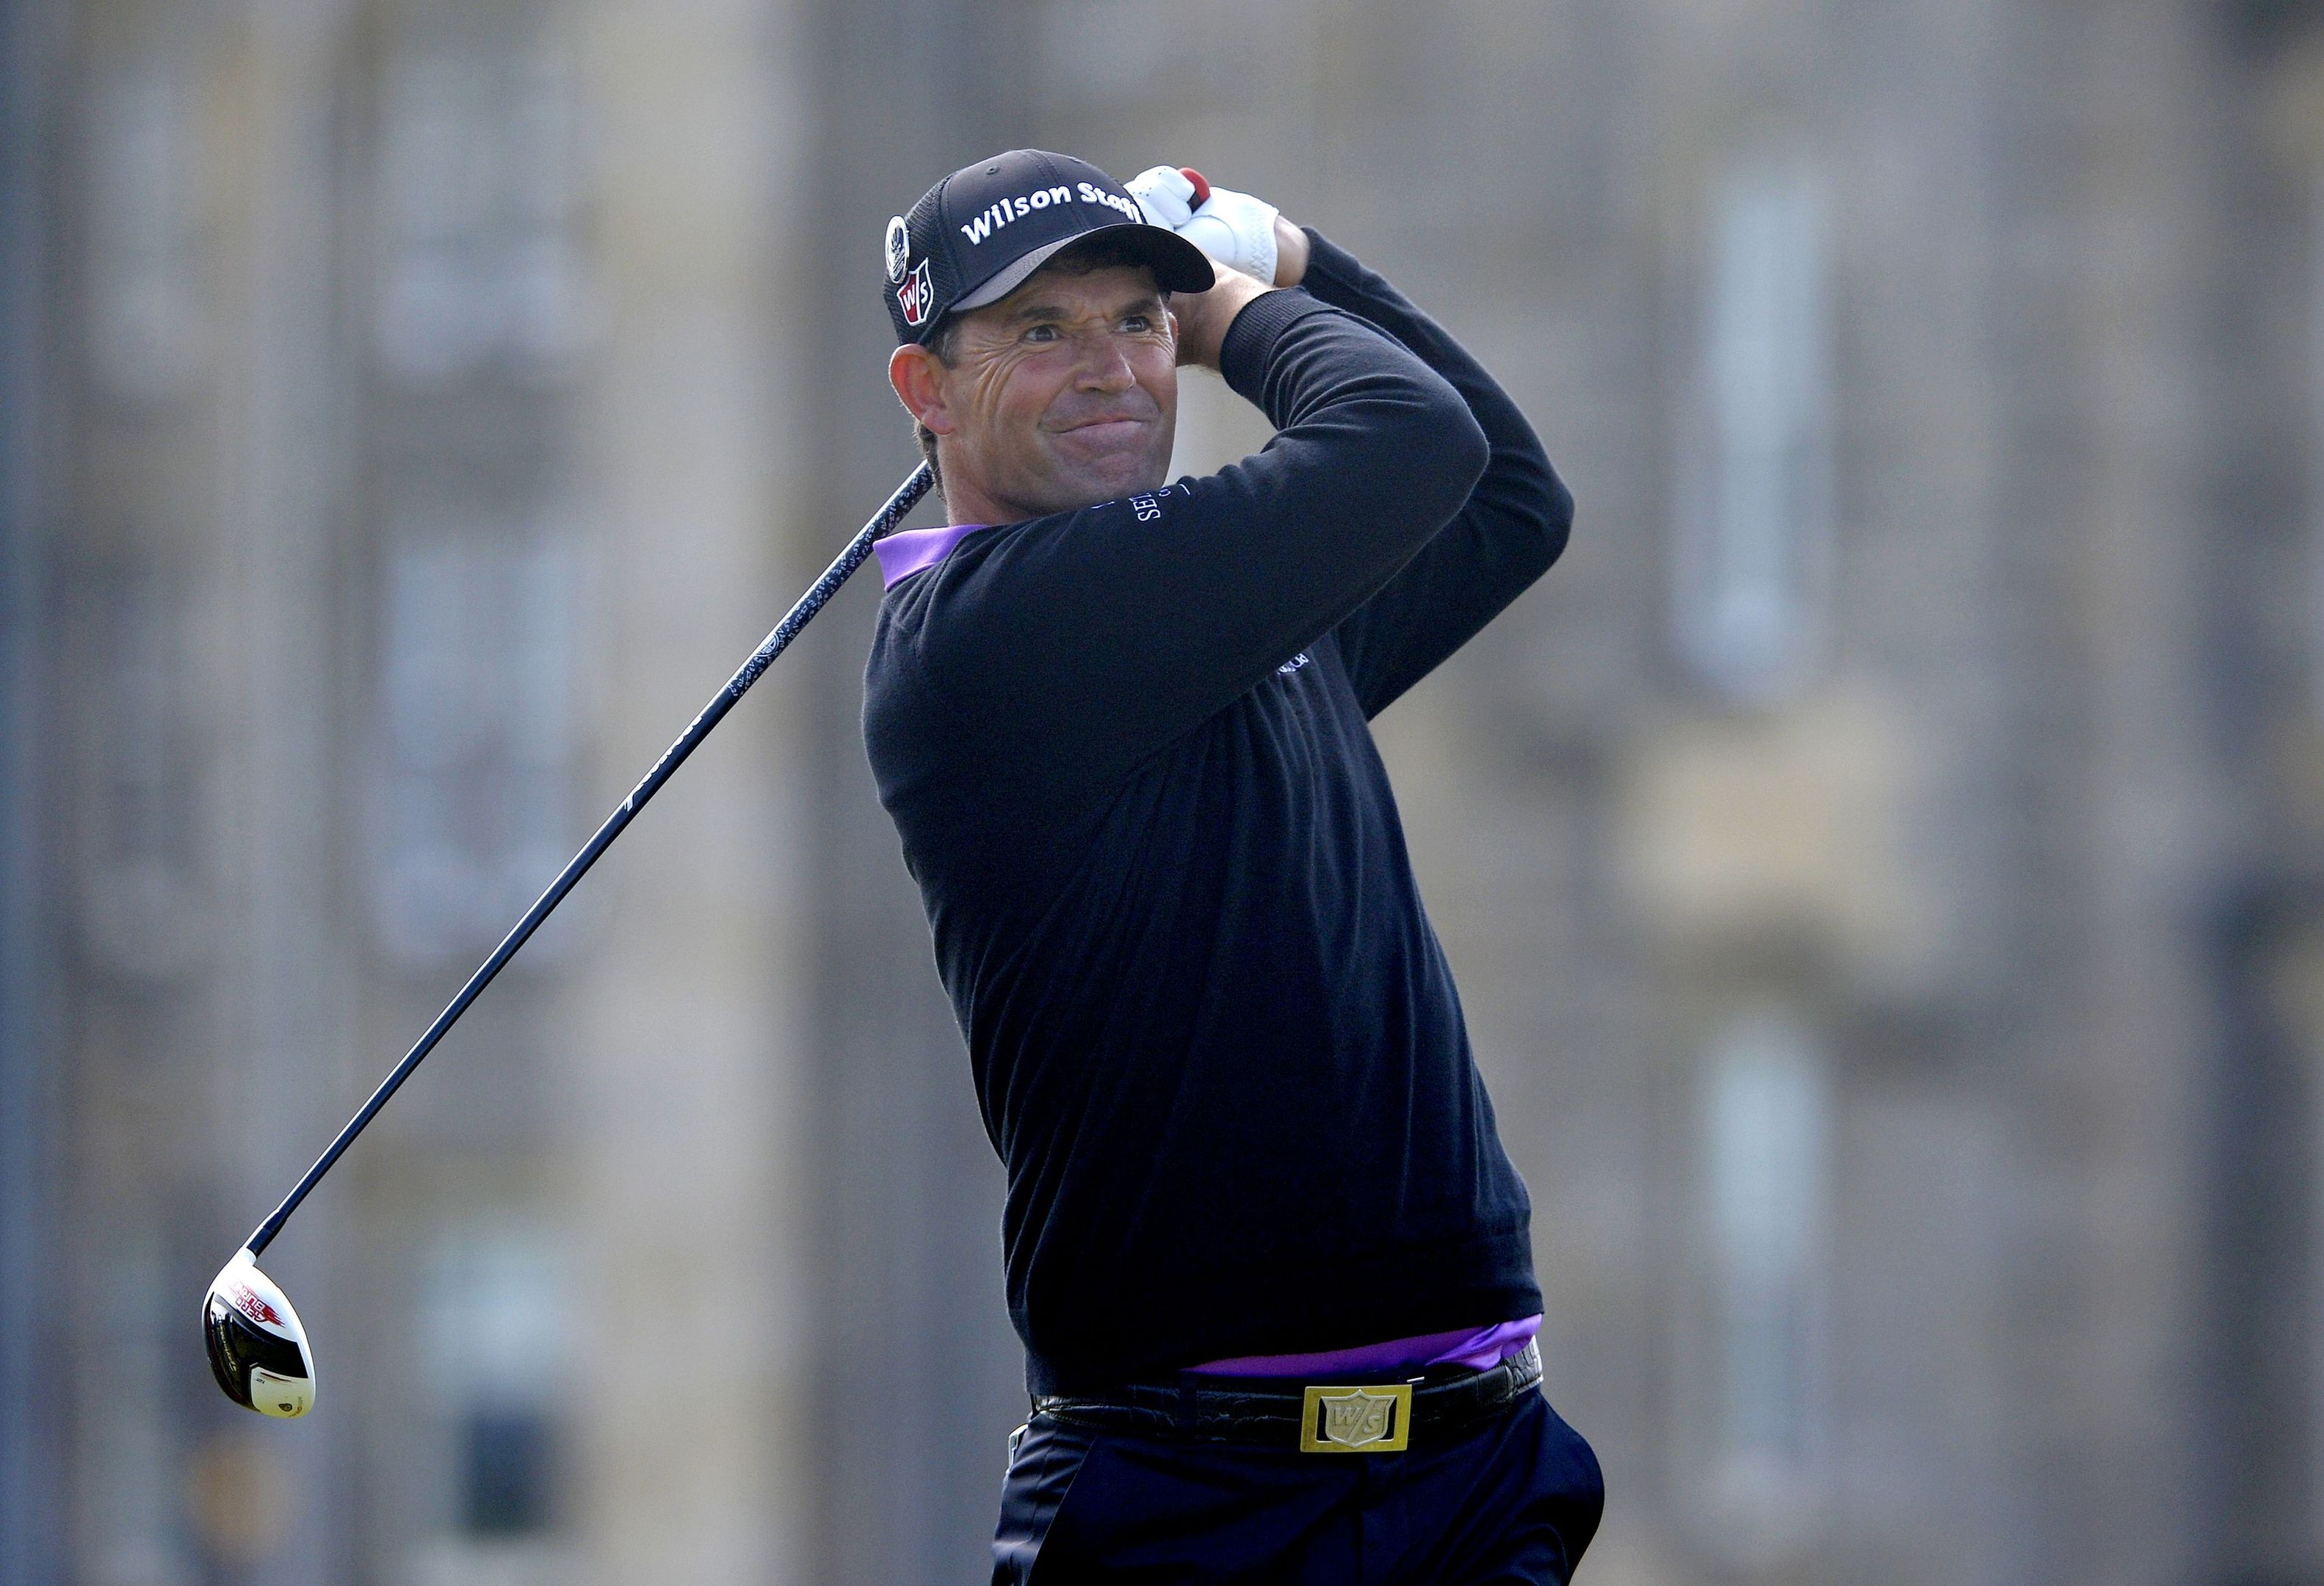 Ireland's Padraig Harrington is aiming at the Ryder Cup captaincy in 2020.